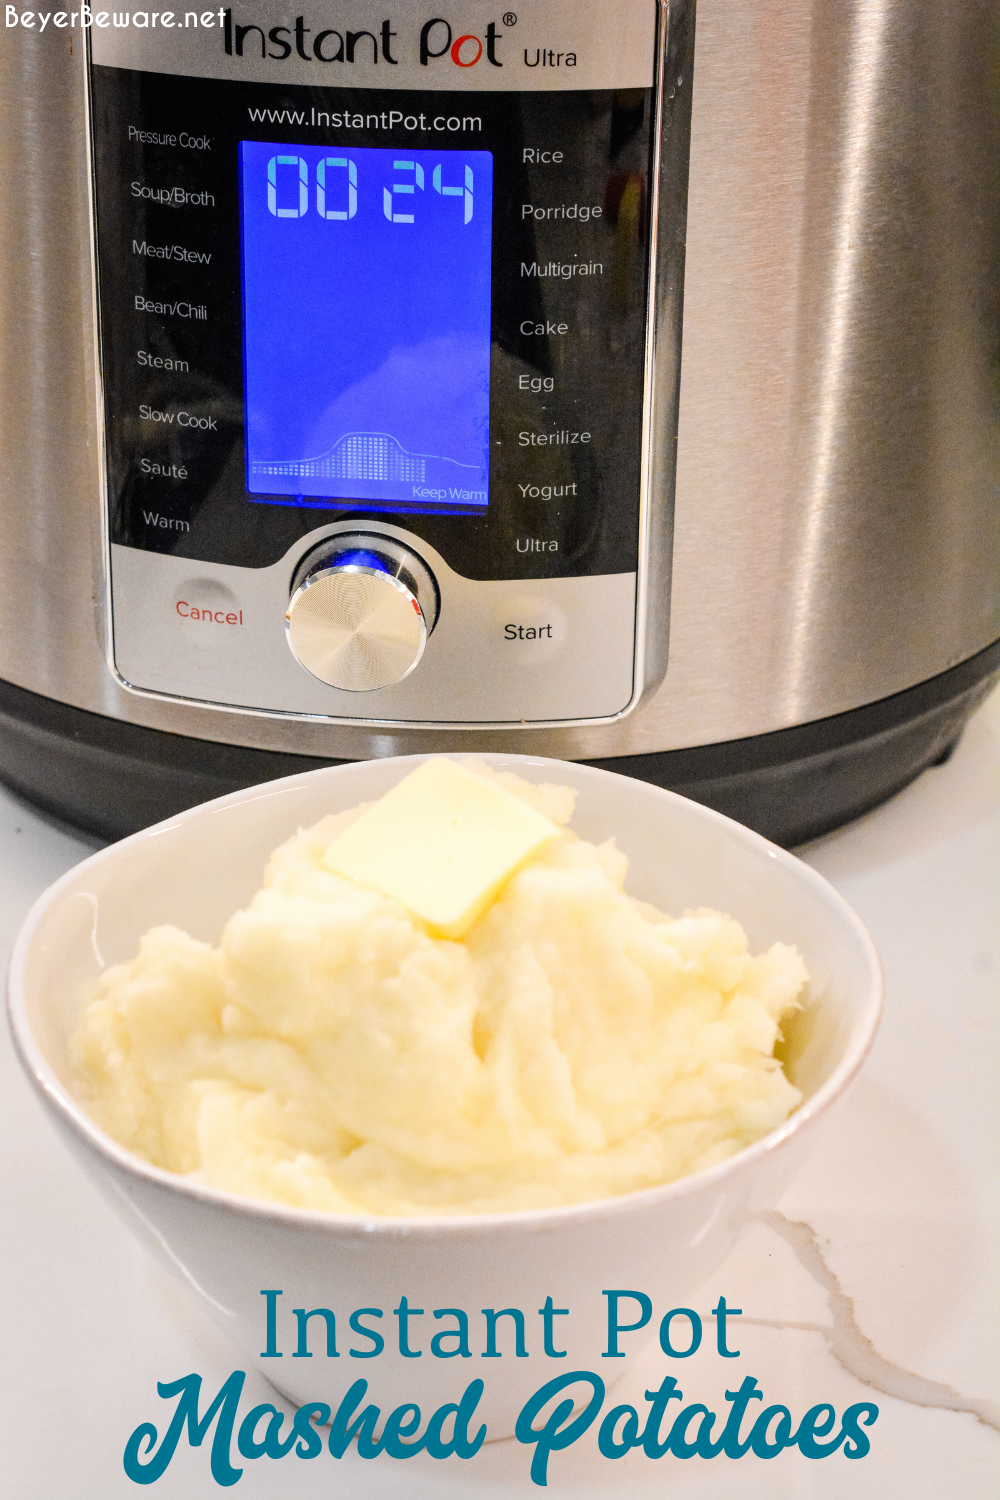 How to make mashed potatoes in the Instant Pot is something everyone needs to do since it is the fastest way to the best mashed potatoes.